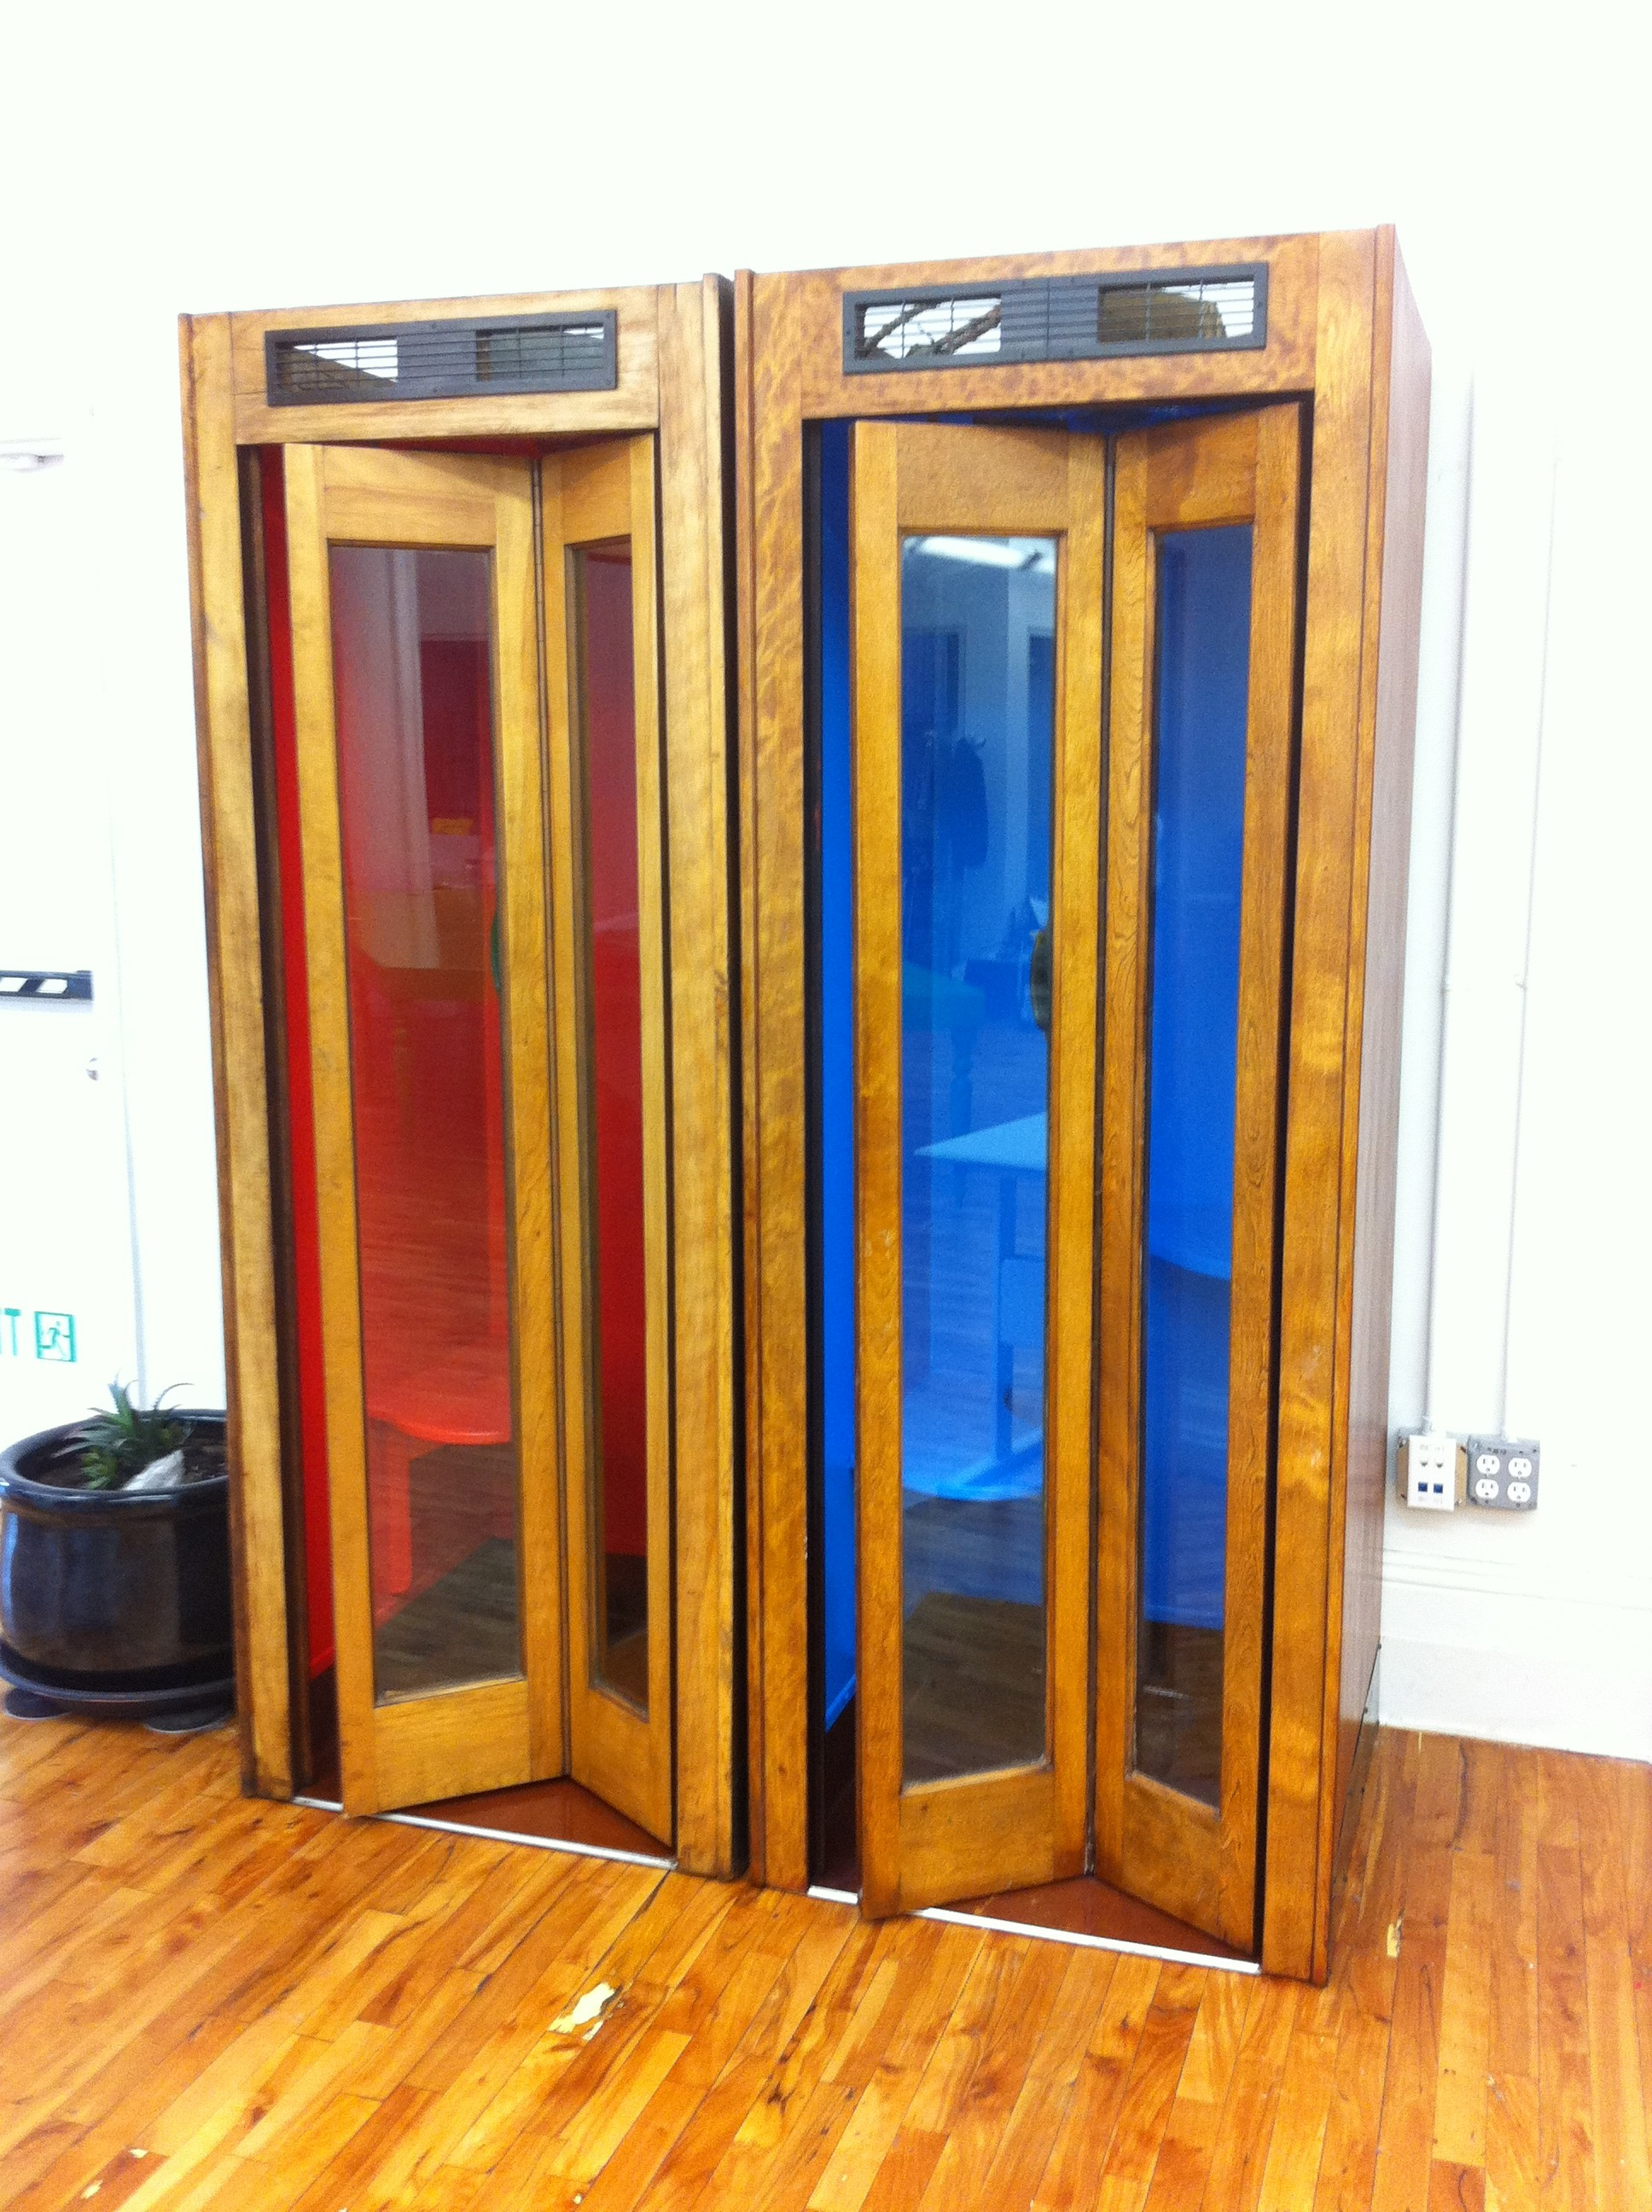 A pic of the painted phone booths with doors closed